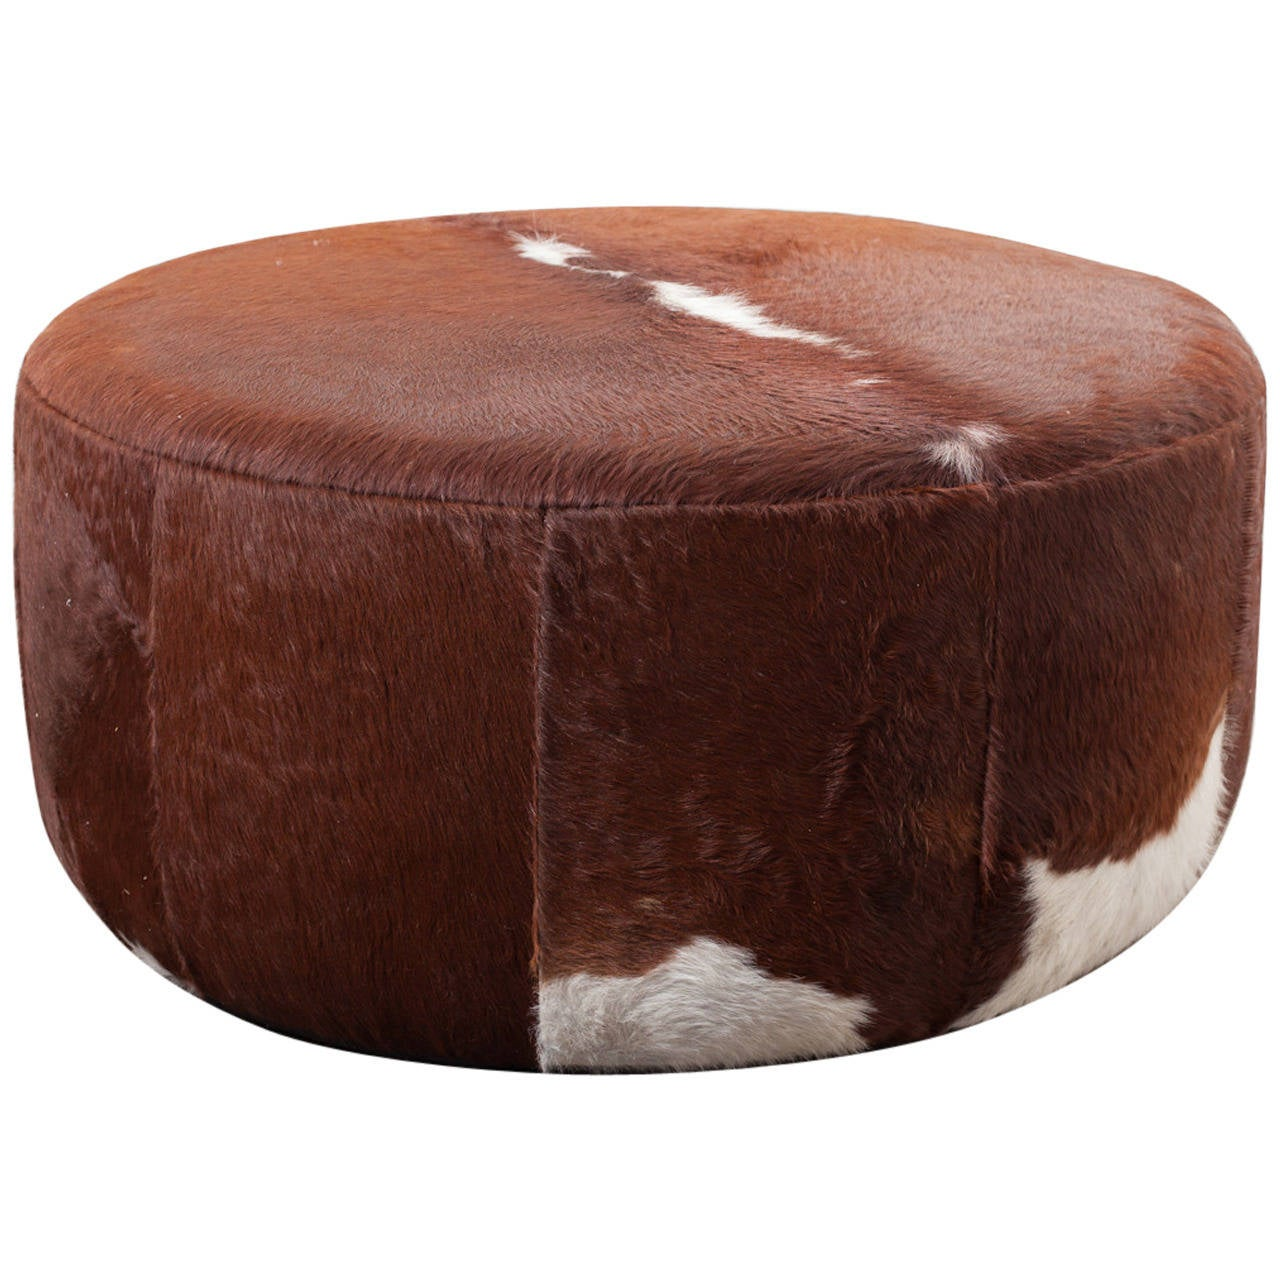 Three Foot Wide Vintage Inspired Cowhide Ottoman Or Coffee